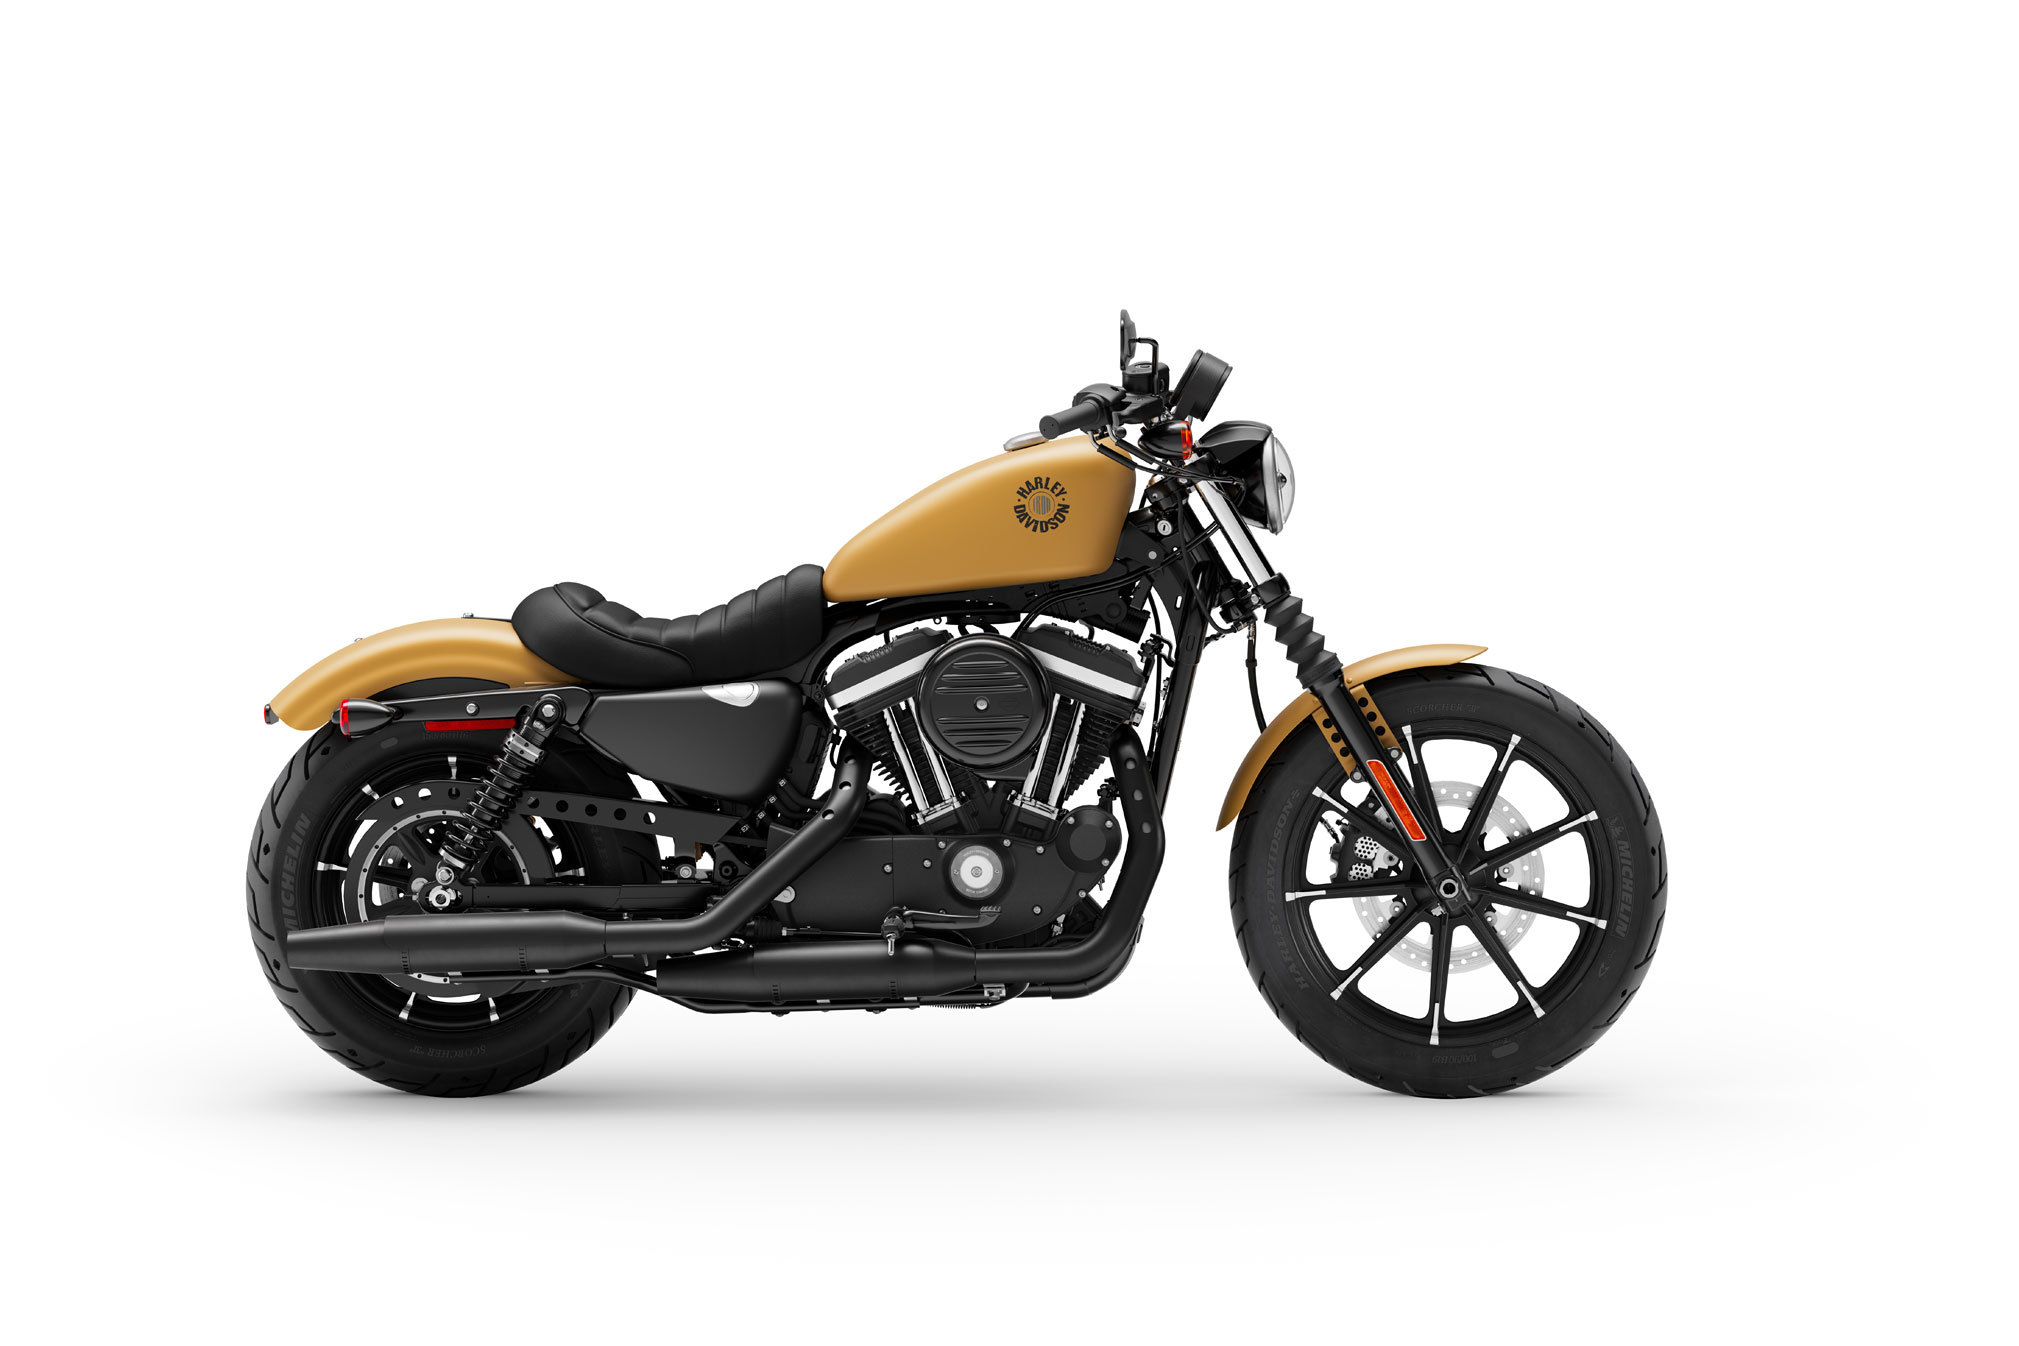 2019 Harley Davidson Fxdr 114 Guide � Total Motorcycle: 2019 Harley-Davidson Iron 883 Guide • Total Motorcycle